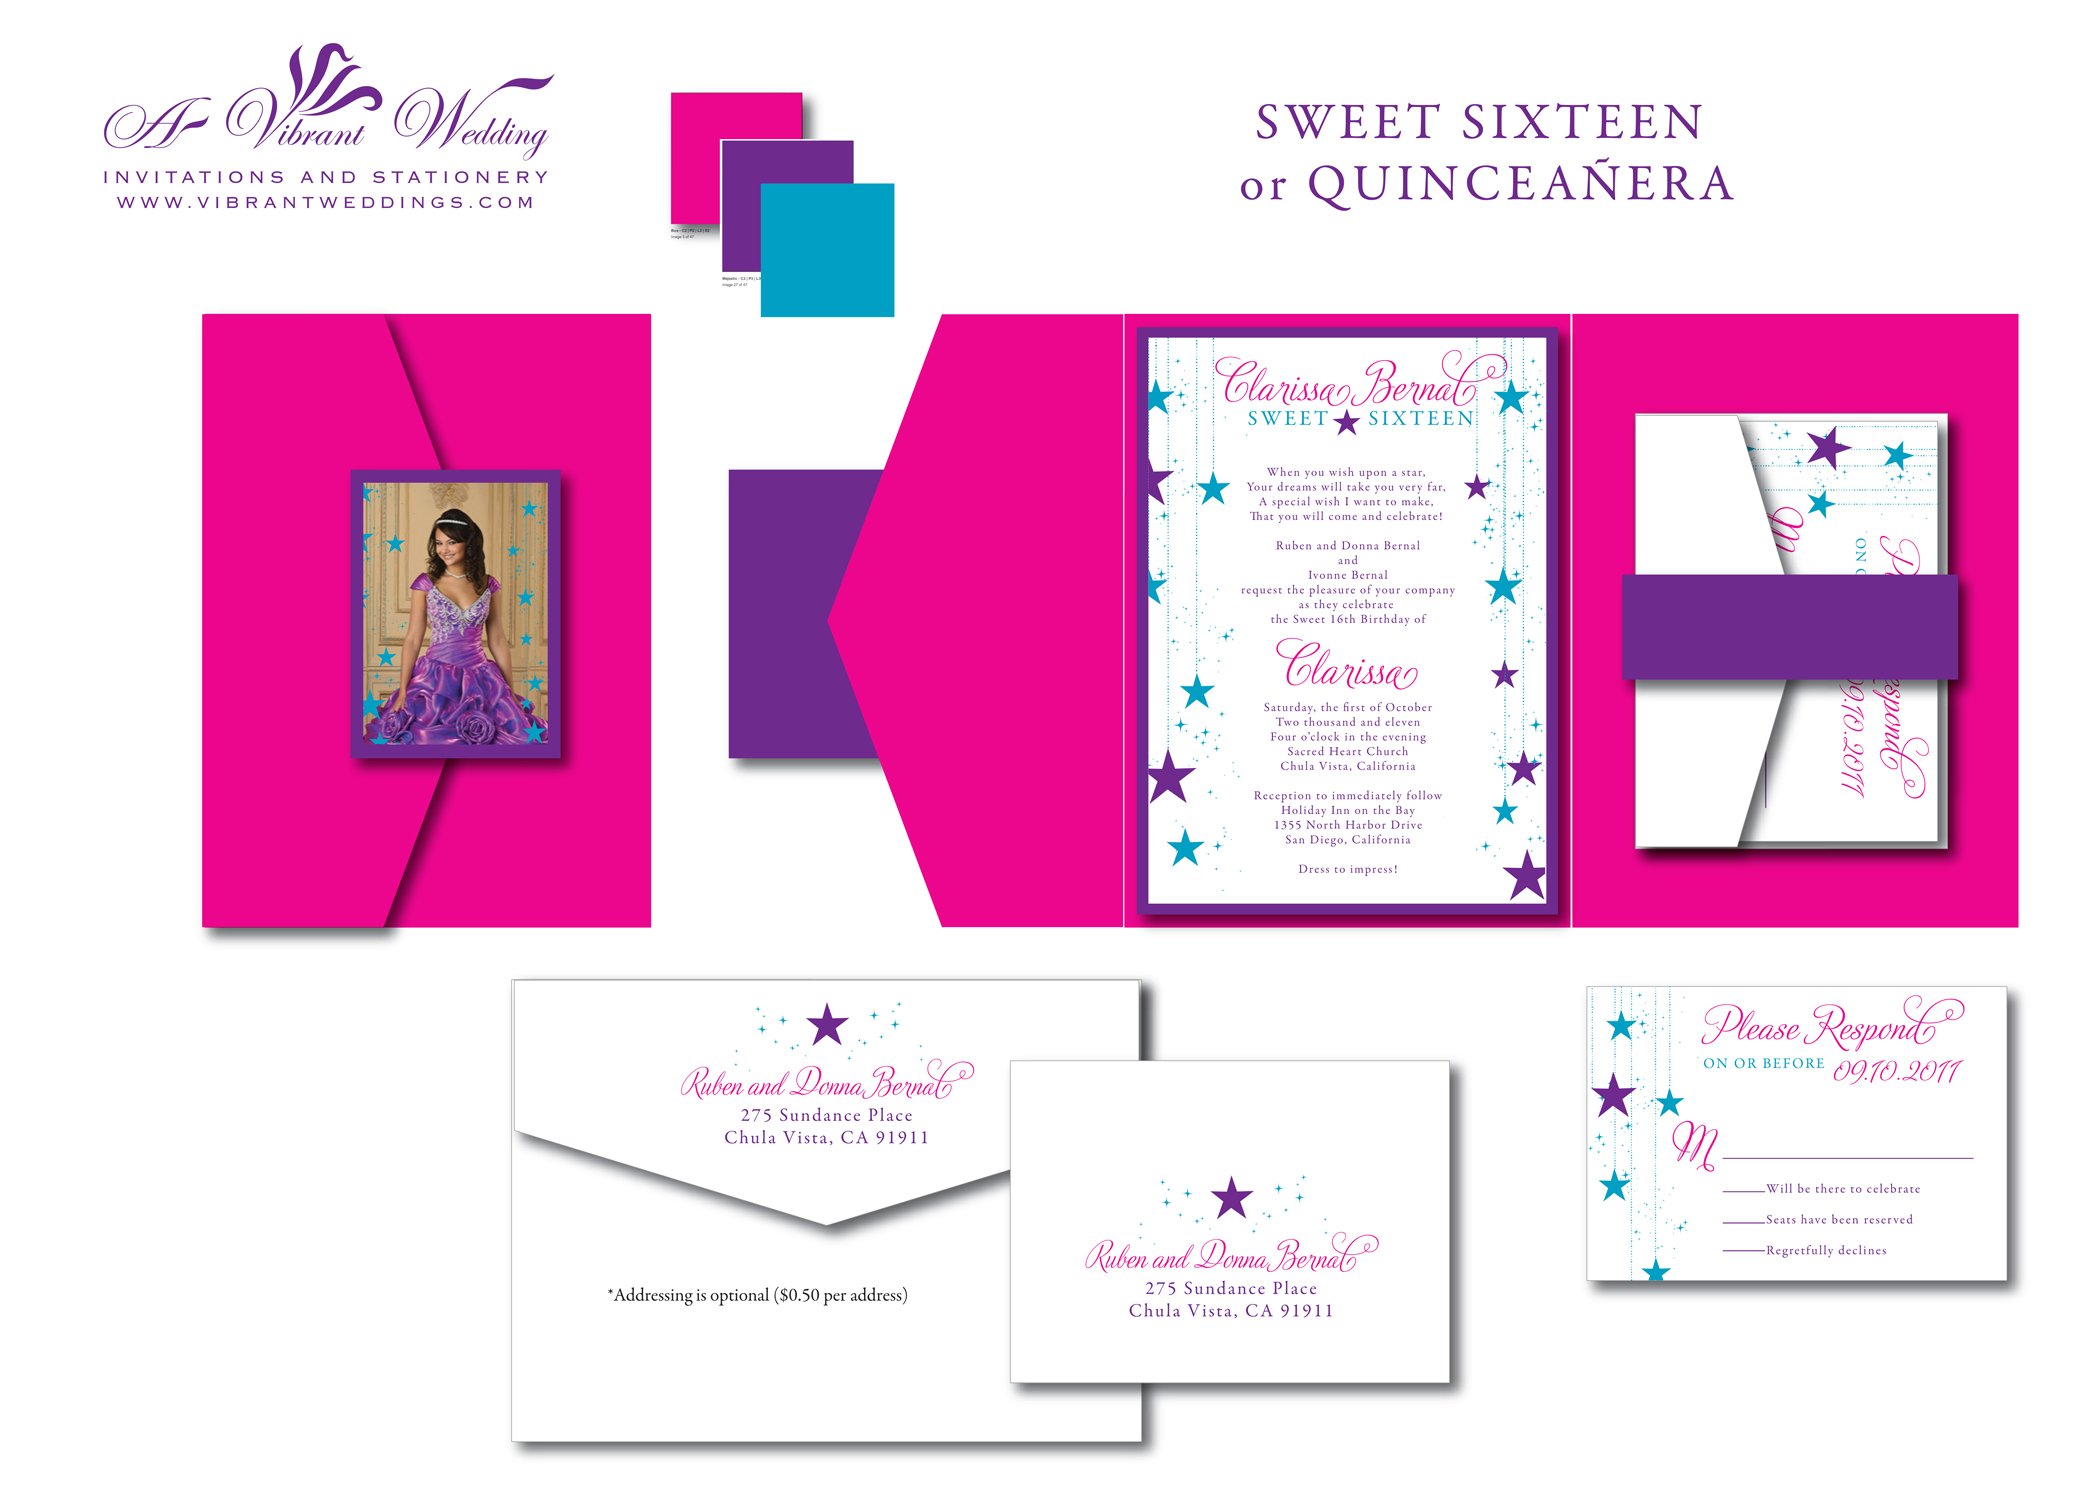 Sweet Sixteen or Quinceanera Star Theme Invitation  5x7 quot  Z-Card Style Quinceanera Star Theme Invitations